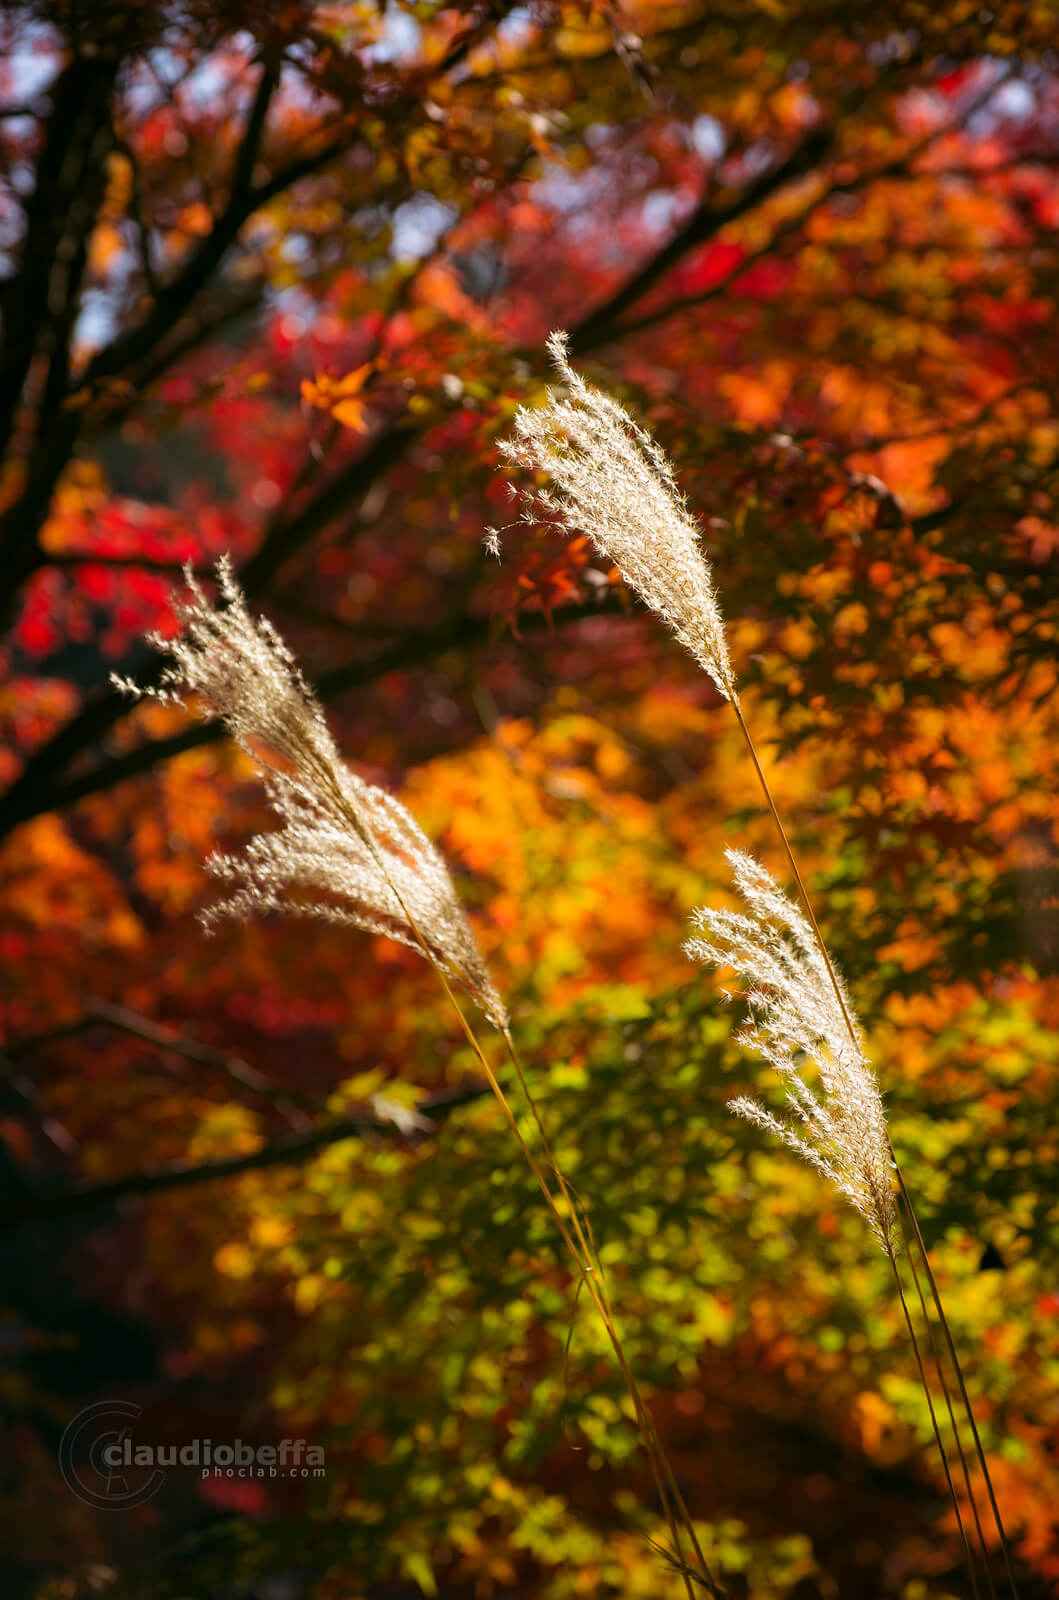 Kii peninsula, Kumano, Japan, Autumn, Susuki, Momiji, Golden, Red, Nature, Light